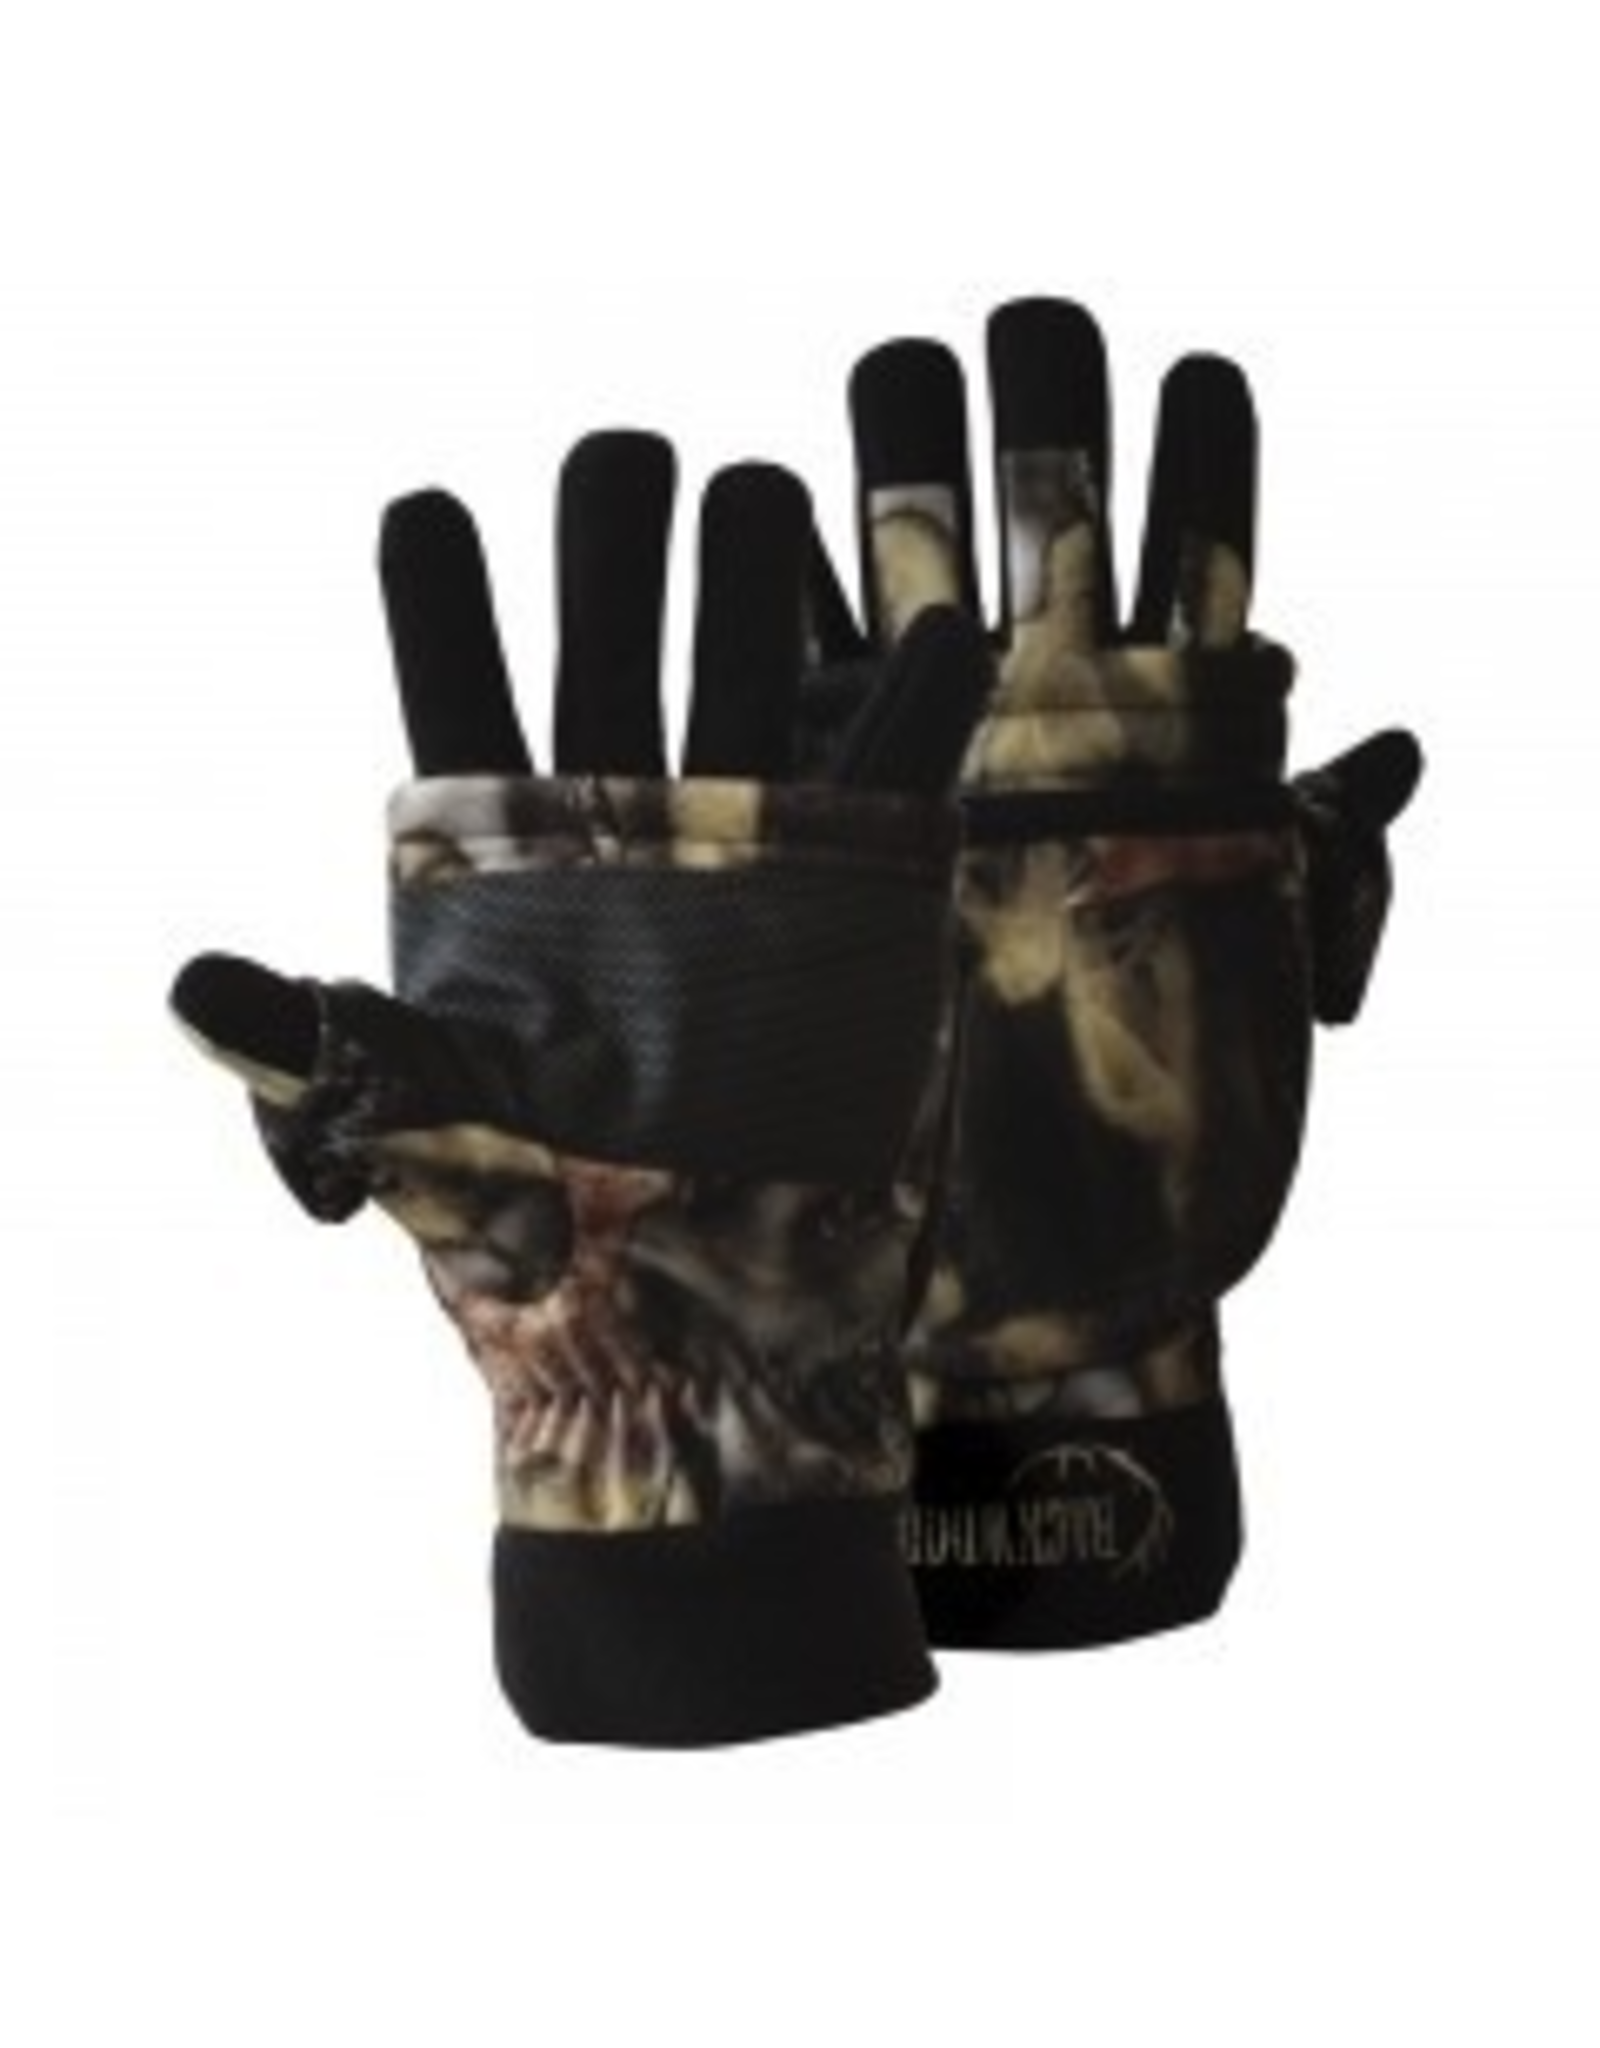 Backwoods 3-Way Hunting Gloves